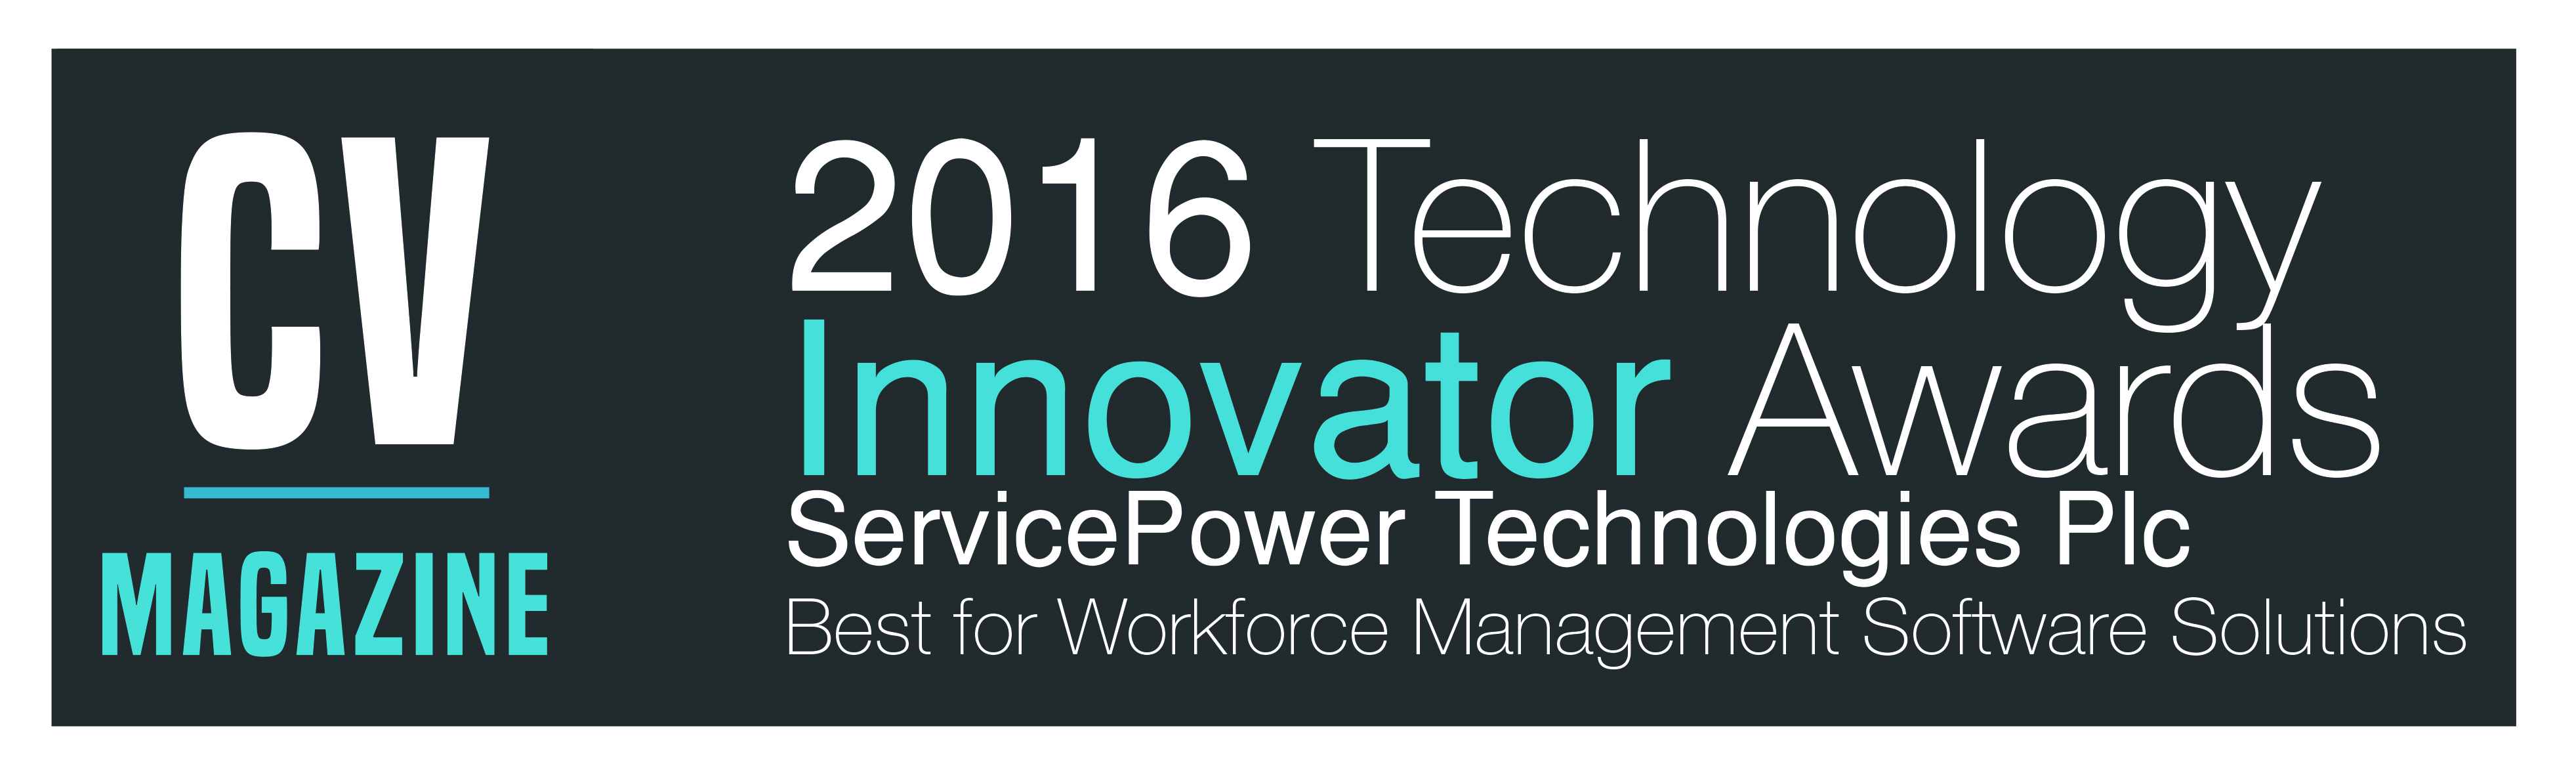 ServicePower_Technologies_Plc-Tech_Innovator_Awards_TI16128_Winners_Logo-1.jpg